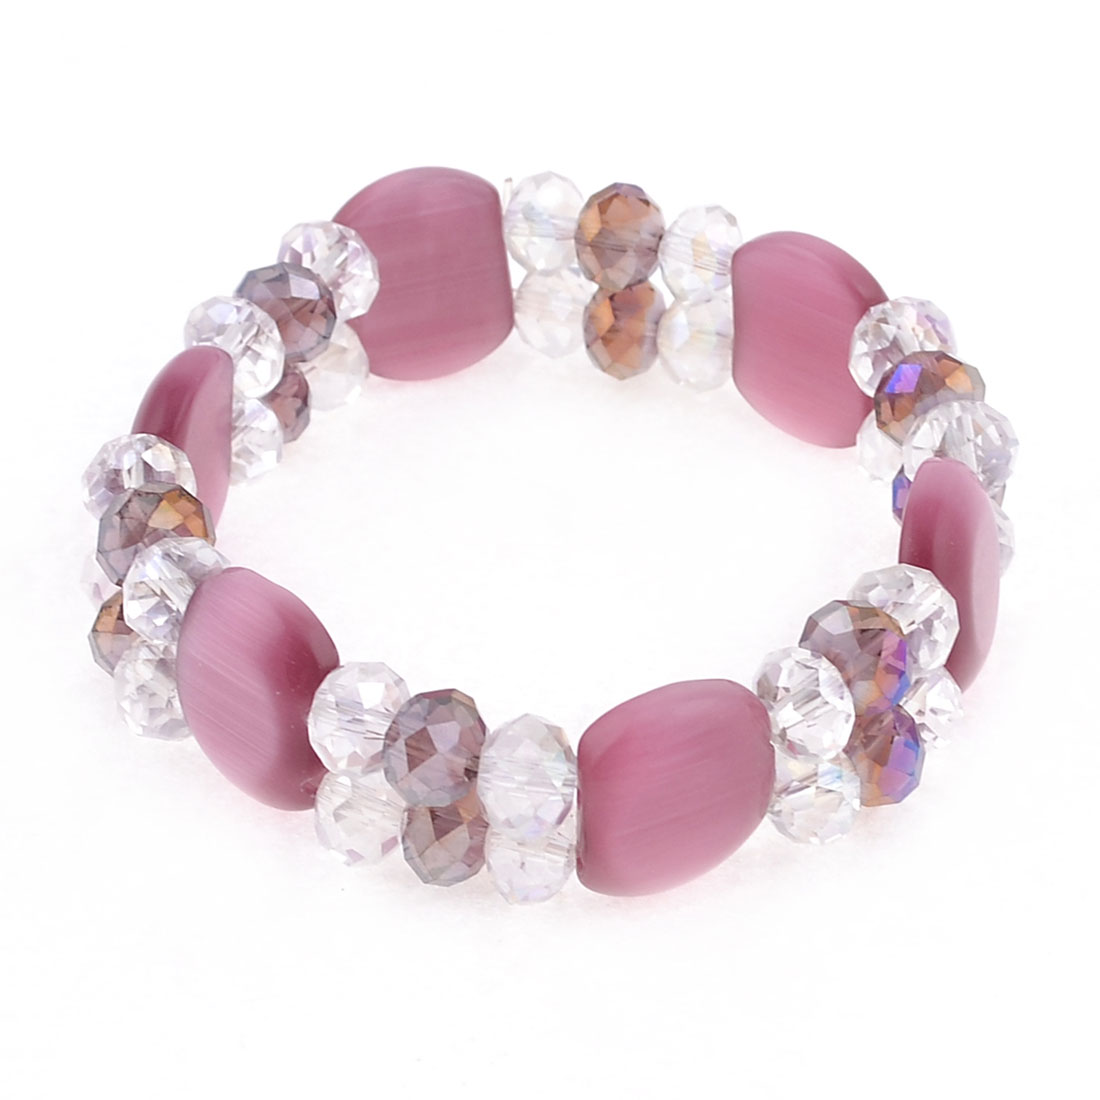 Burgundy Clear Double Layer Beaded Crystal Bracelet Wrist Ornament for Lady